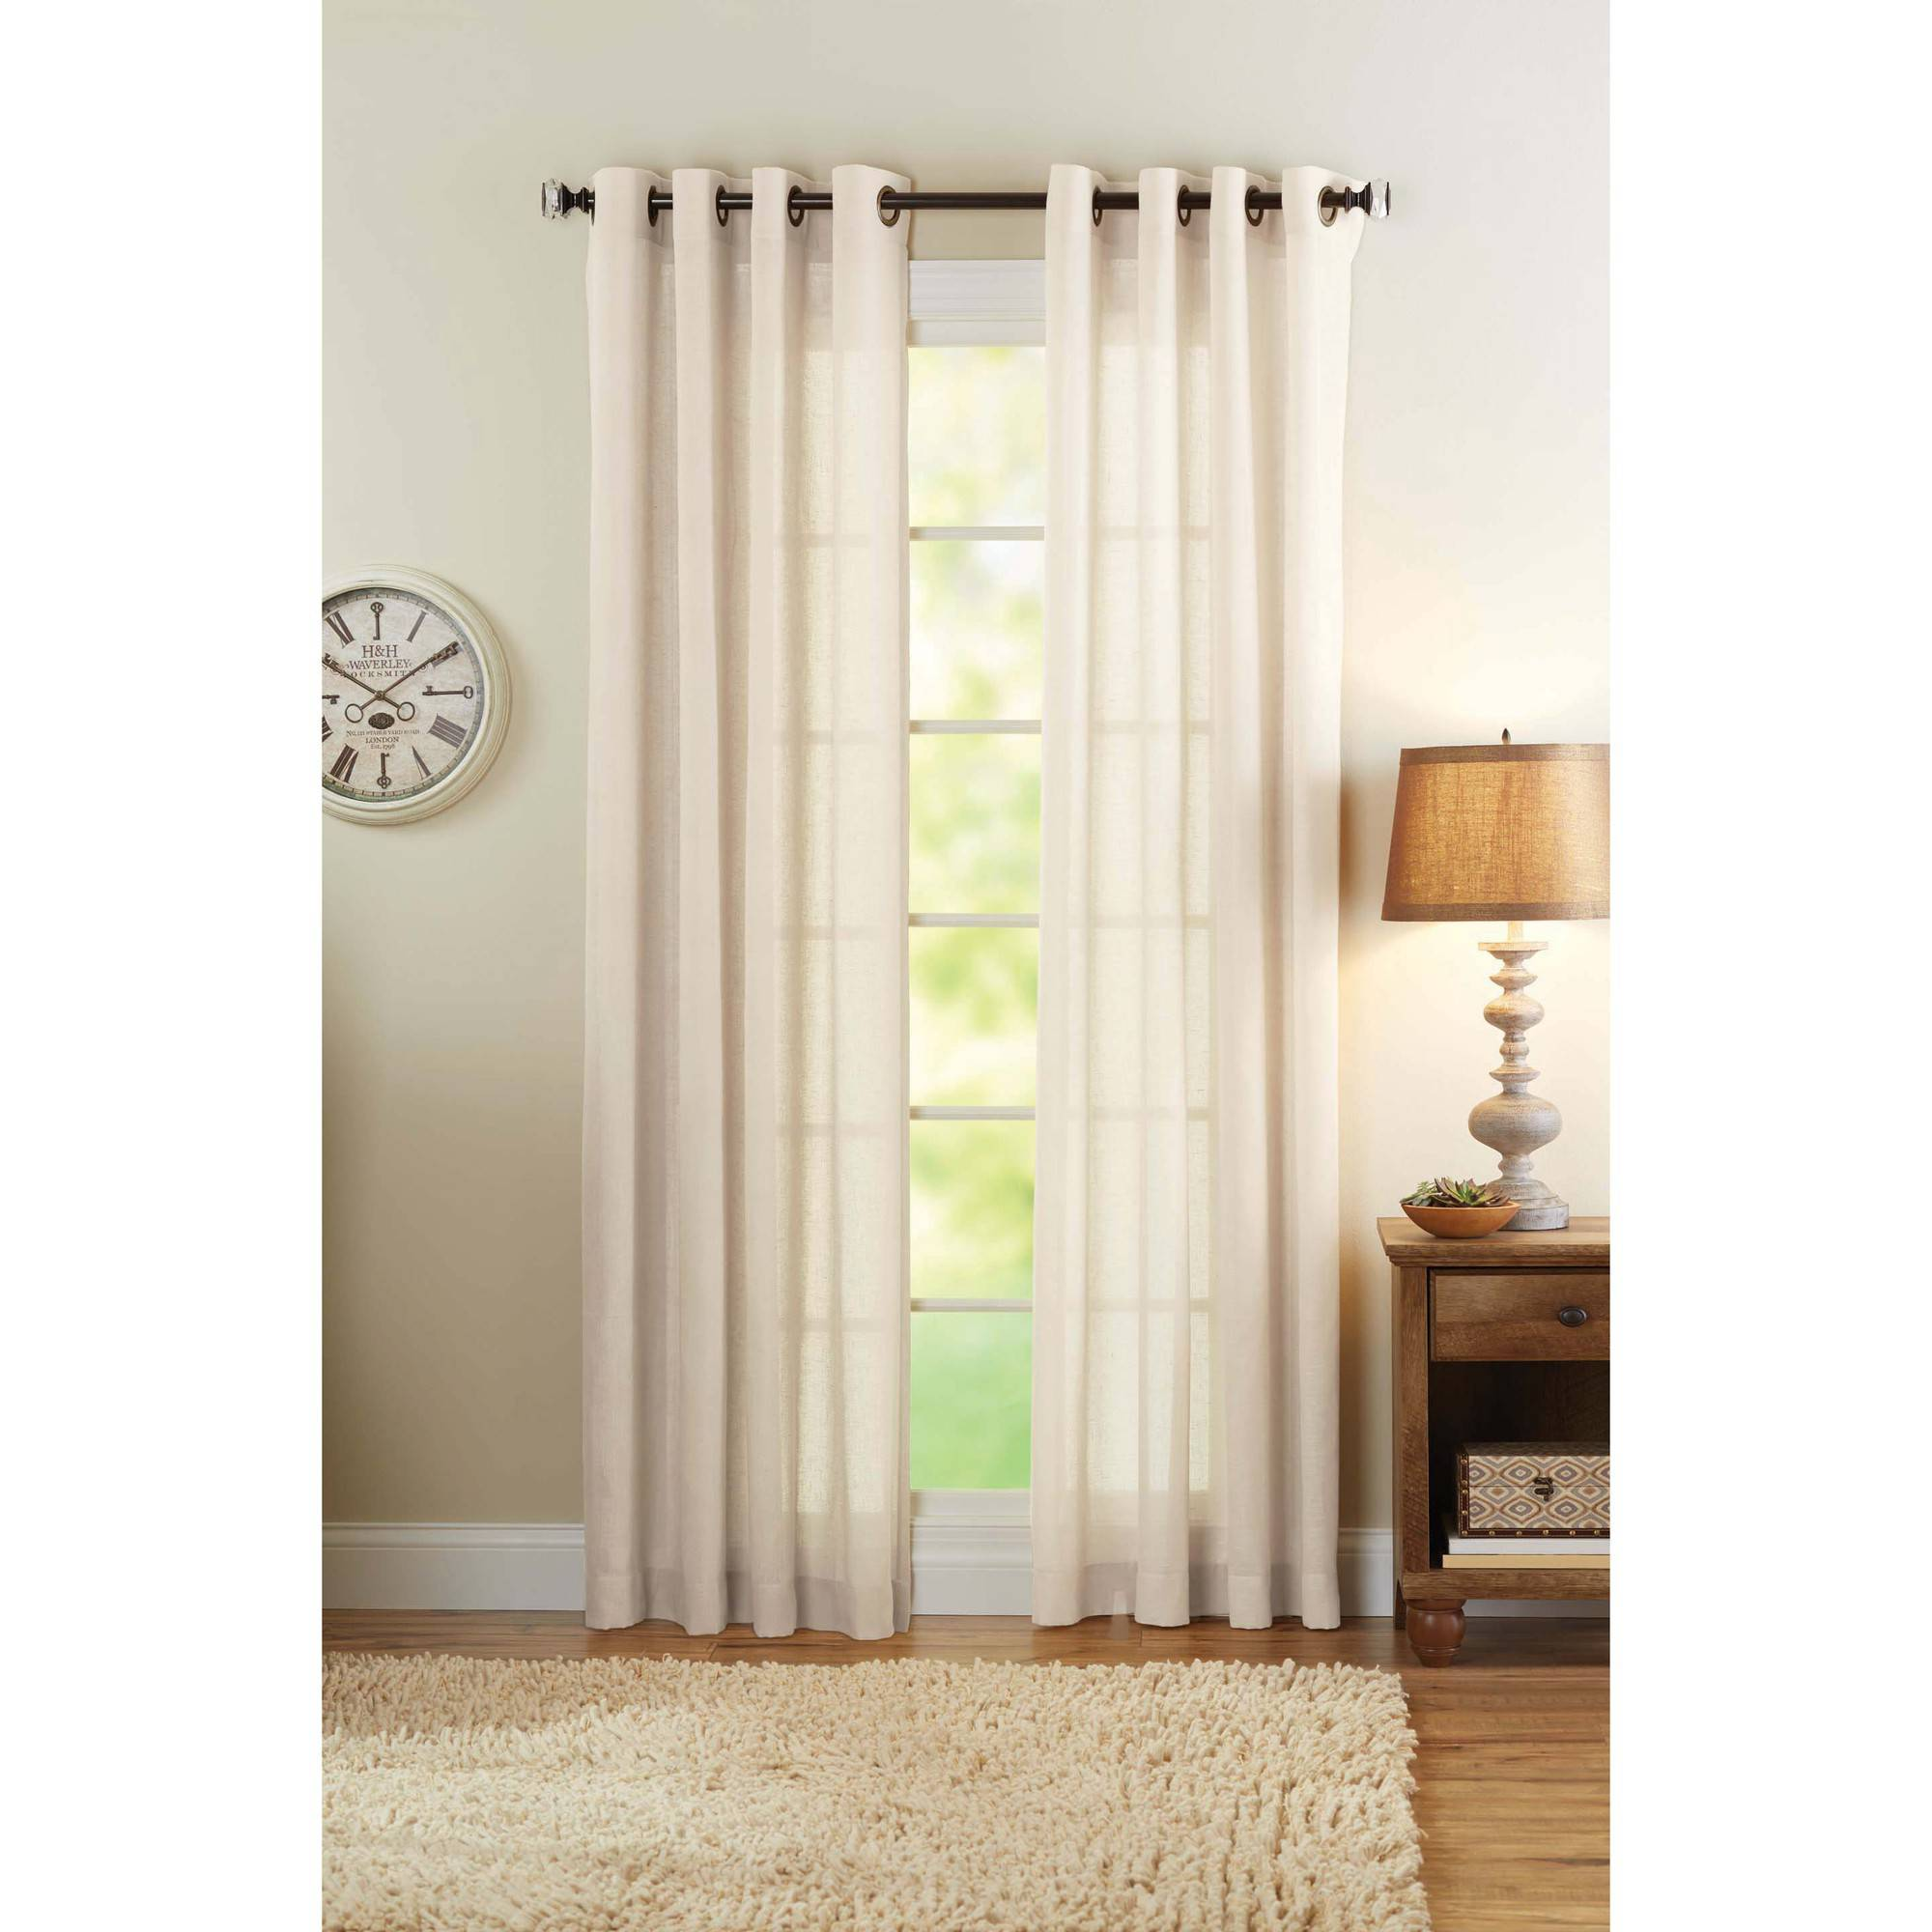 Better Homes and Gardens Semi-Sheer Grommet Curtain Panel, Bleached Linen